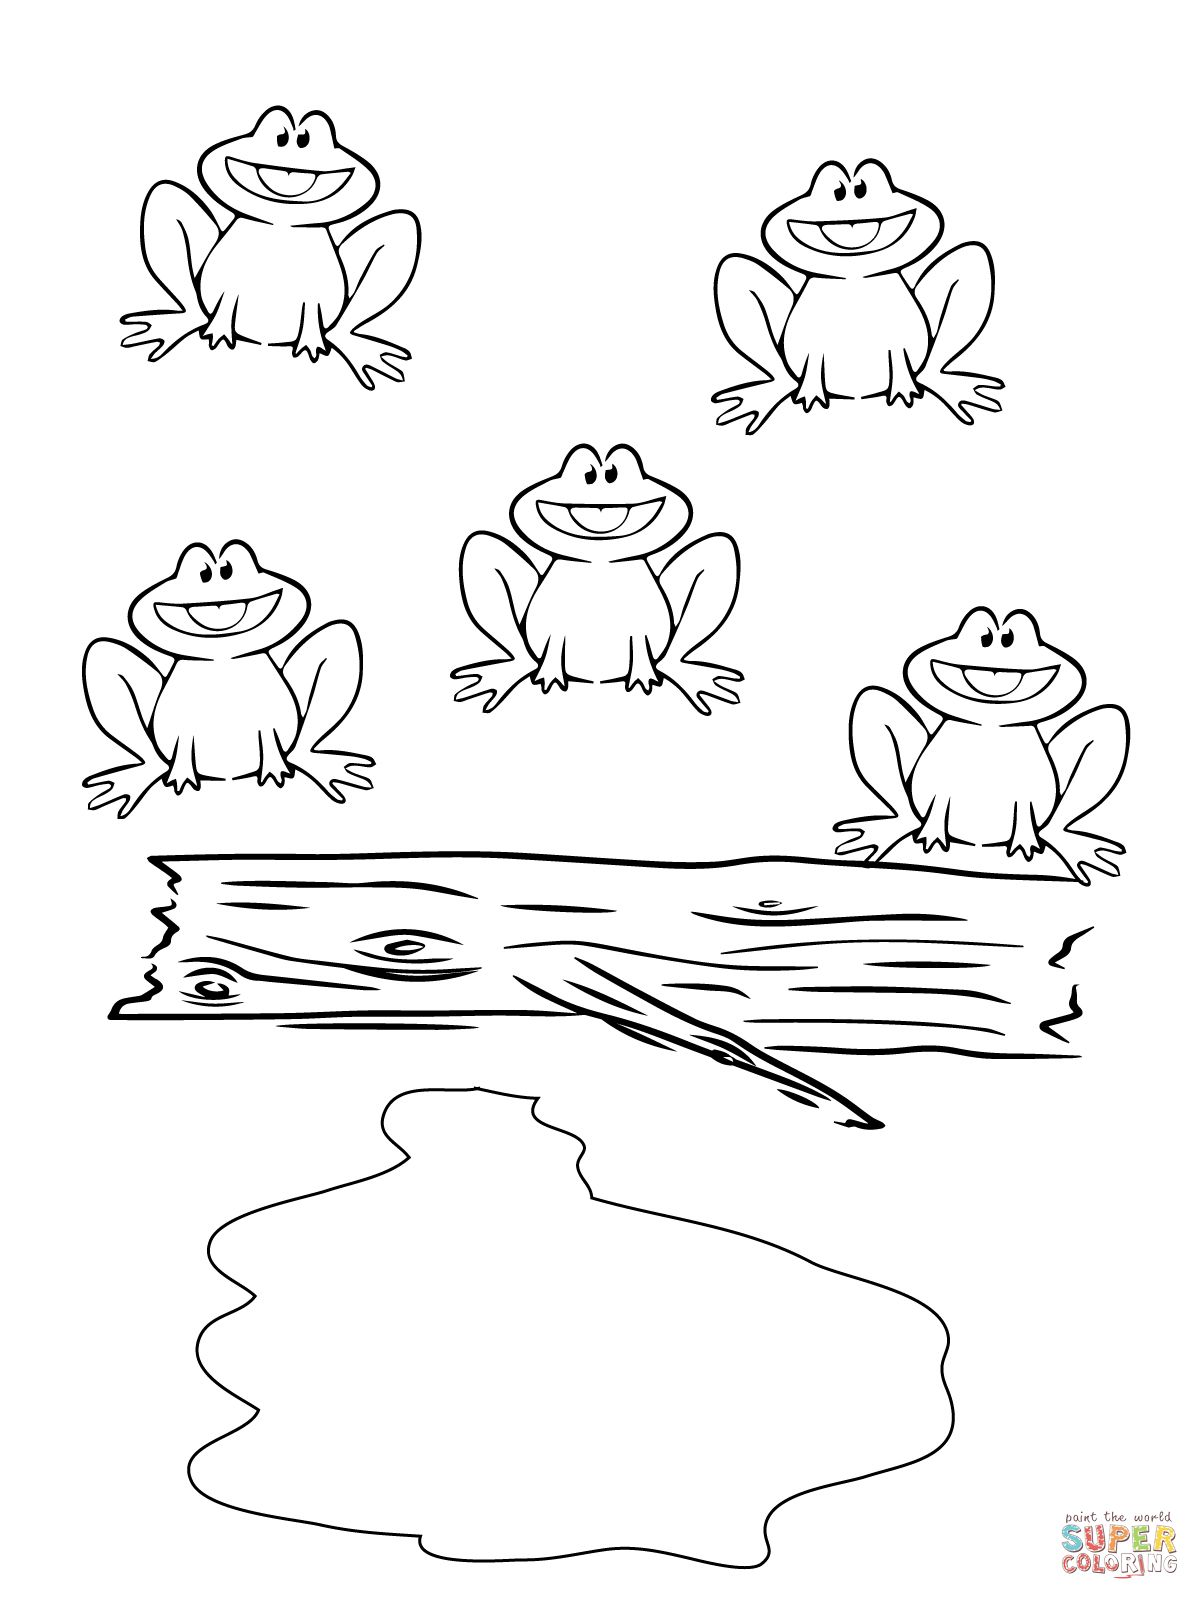 Five Little Speckled Frogs Coloring Page